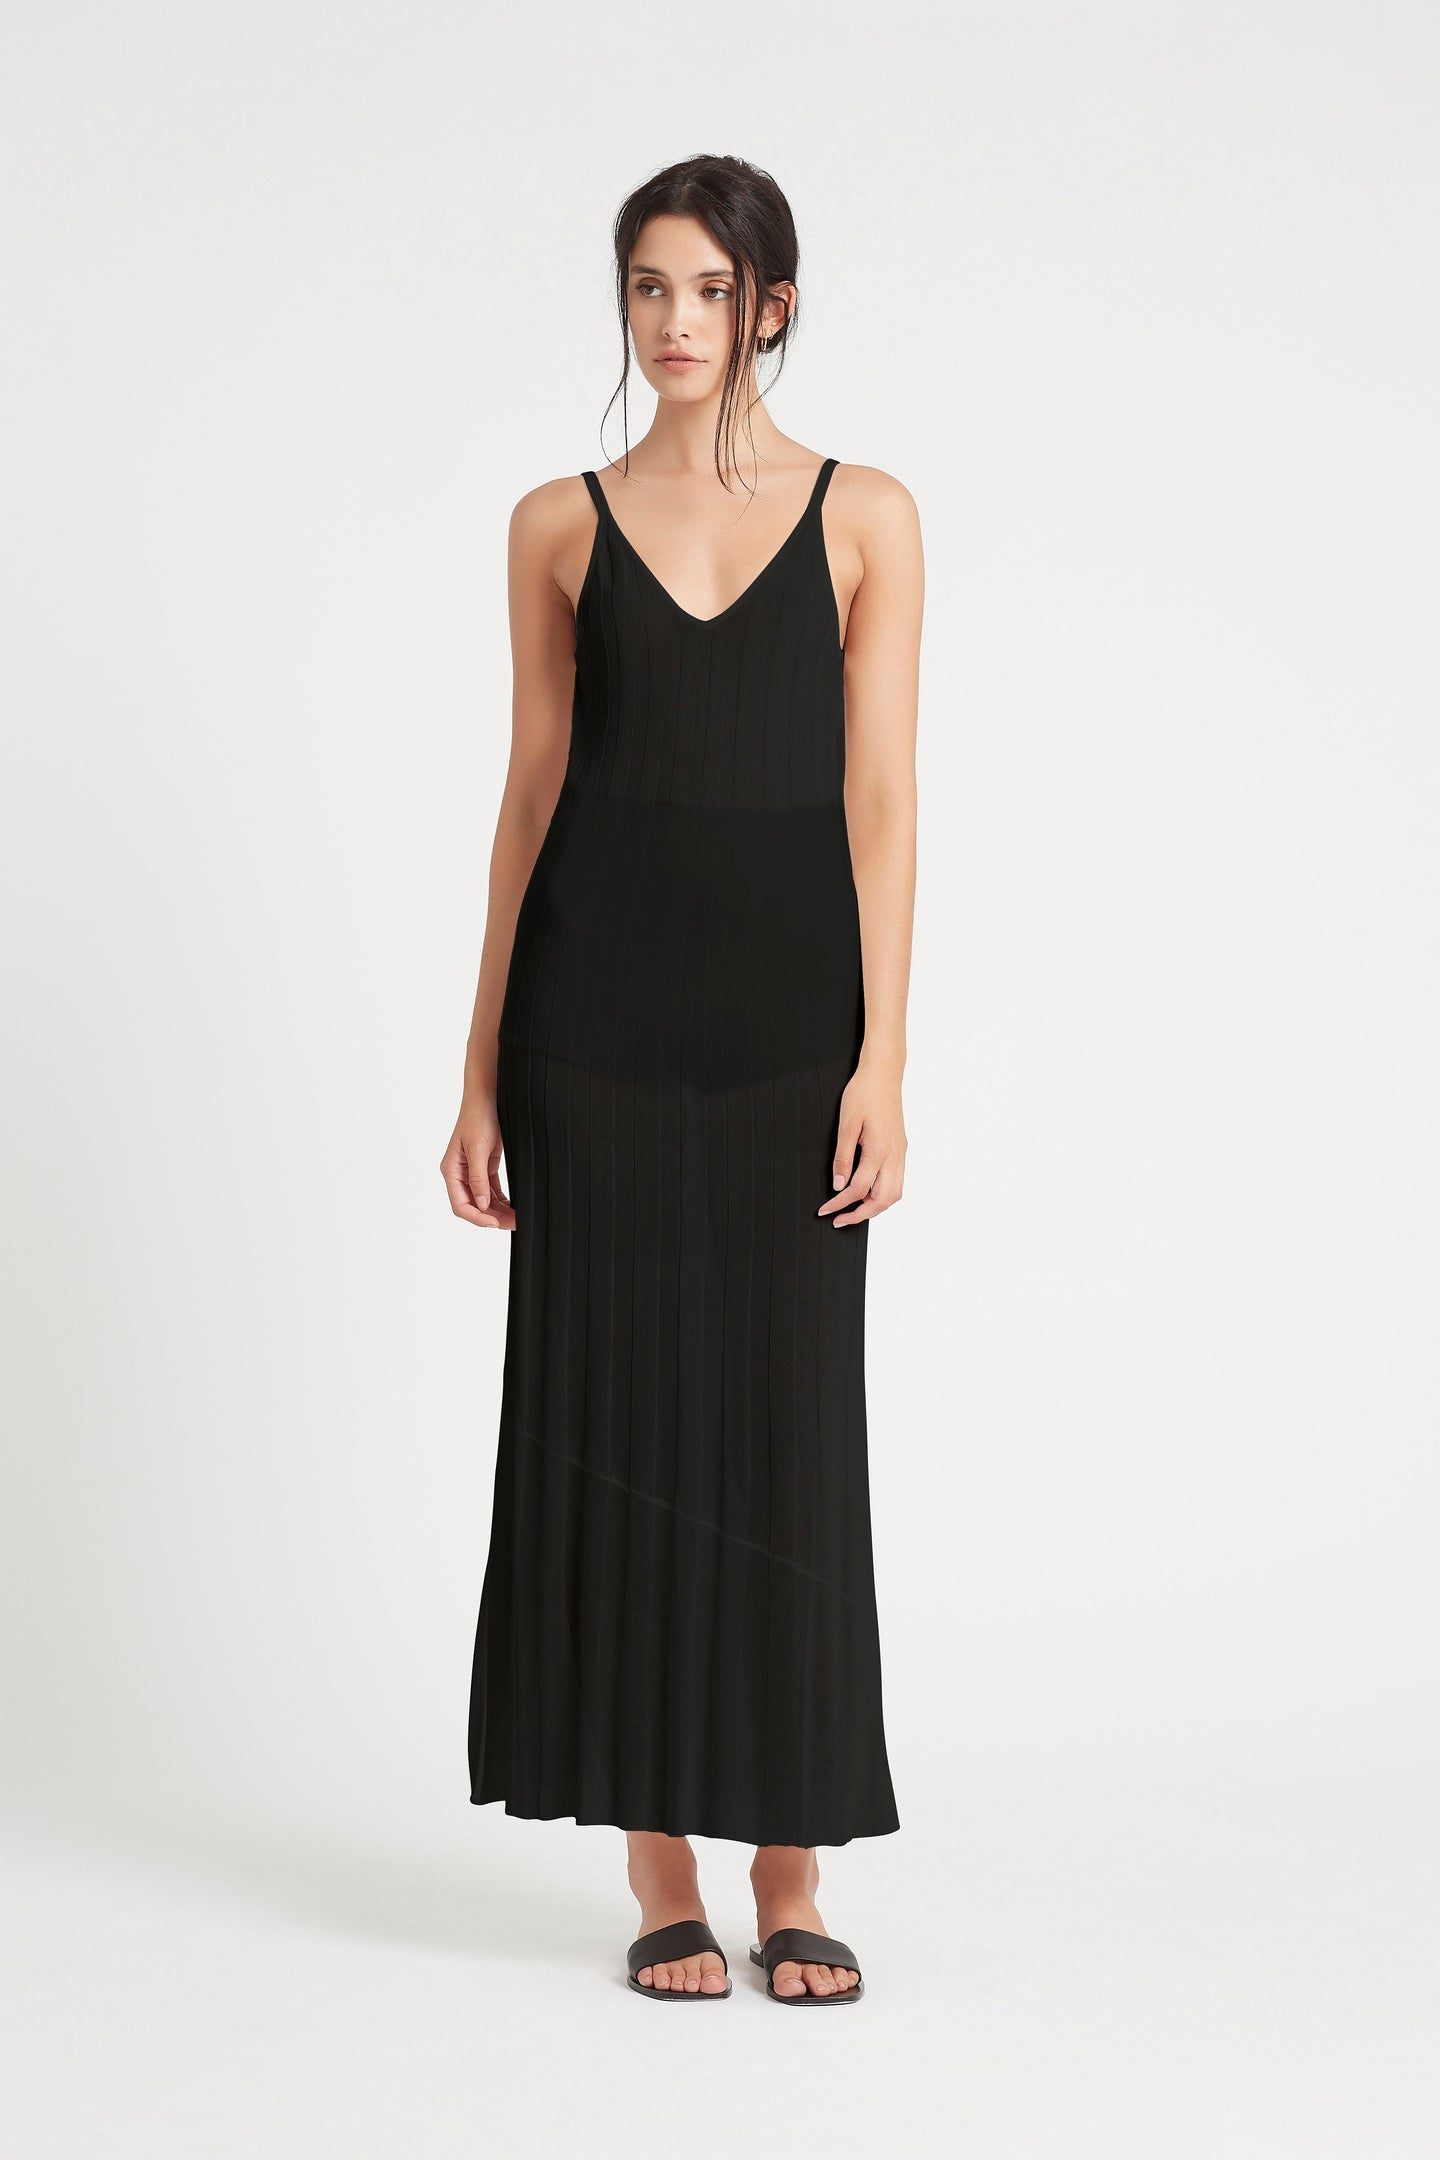 SIR the label VERA LOW BACK DRESS BLACK